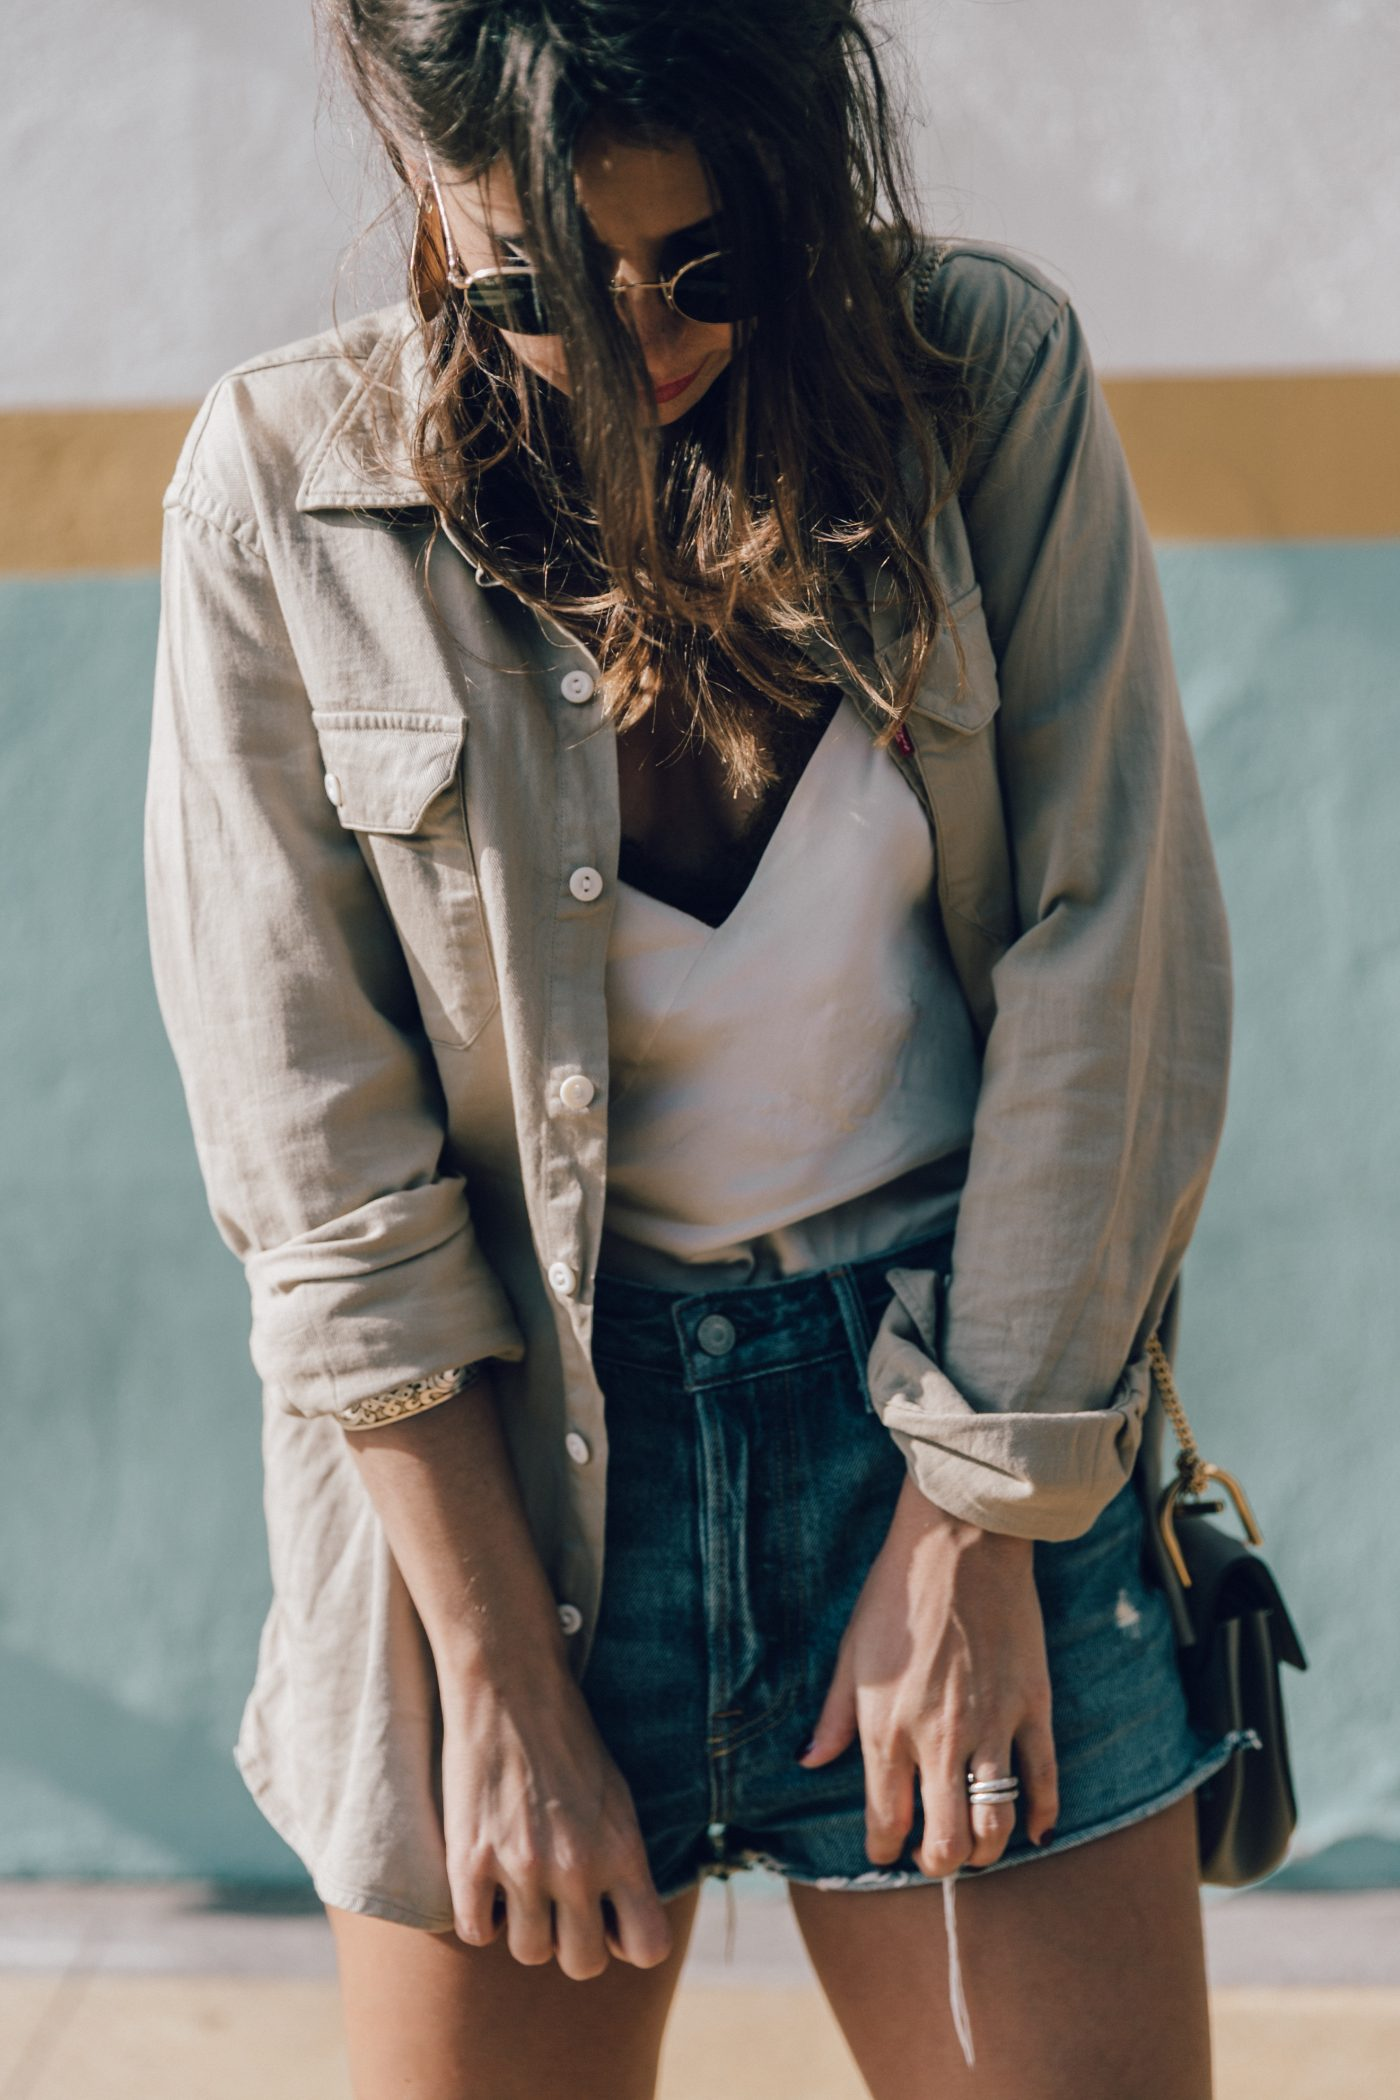 Levis_Shirt-GRLFRND_Denim-Chloe_Bag-Los_Angeles-Shorts-Outfit-Street_Style-Ray_Ban-Street_Style-Collage_Vintage-38